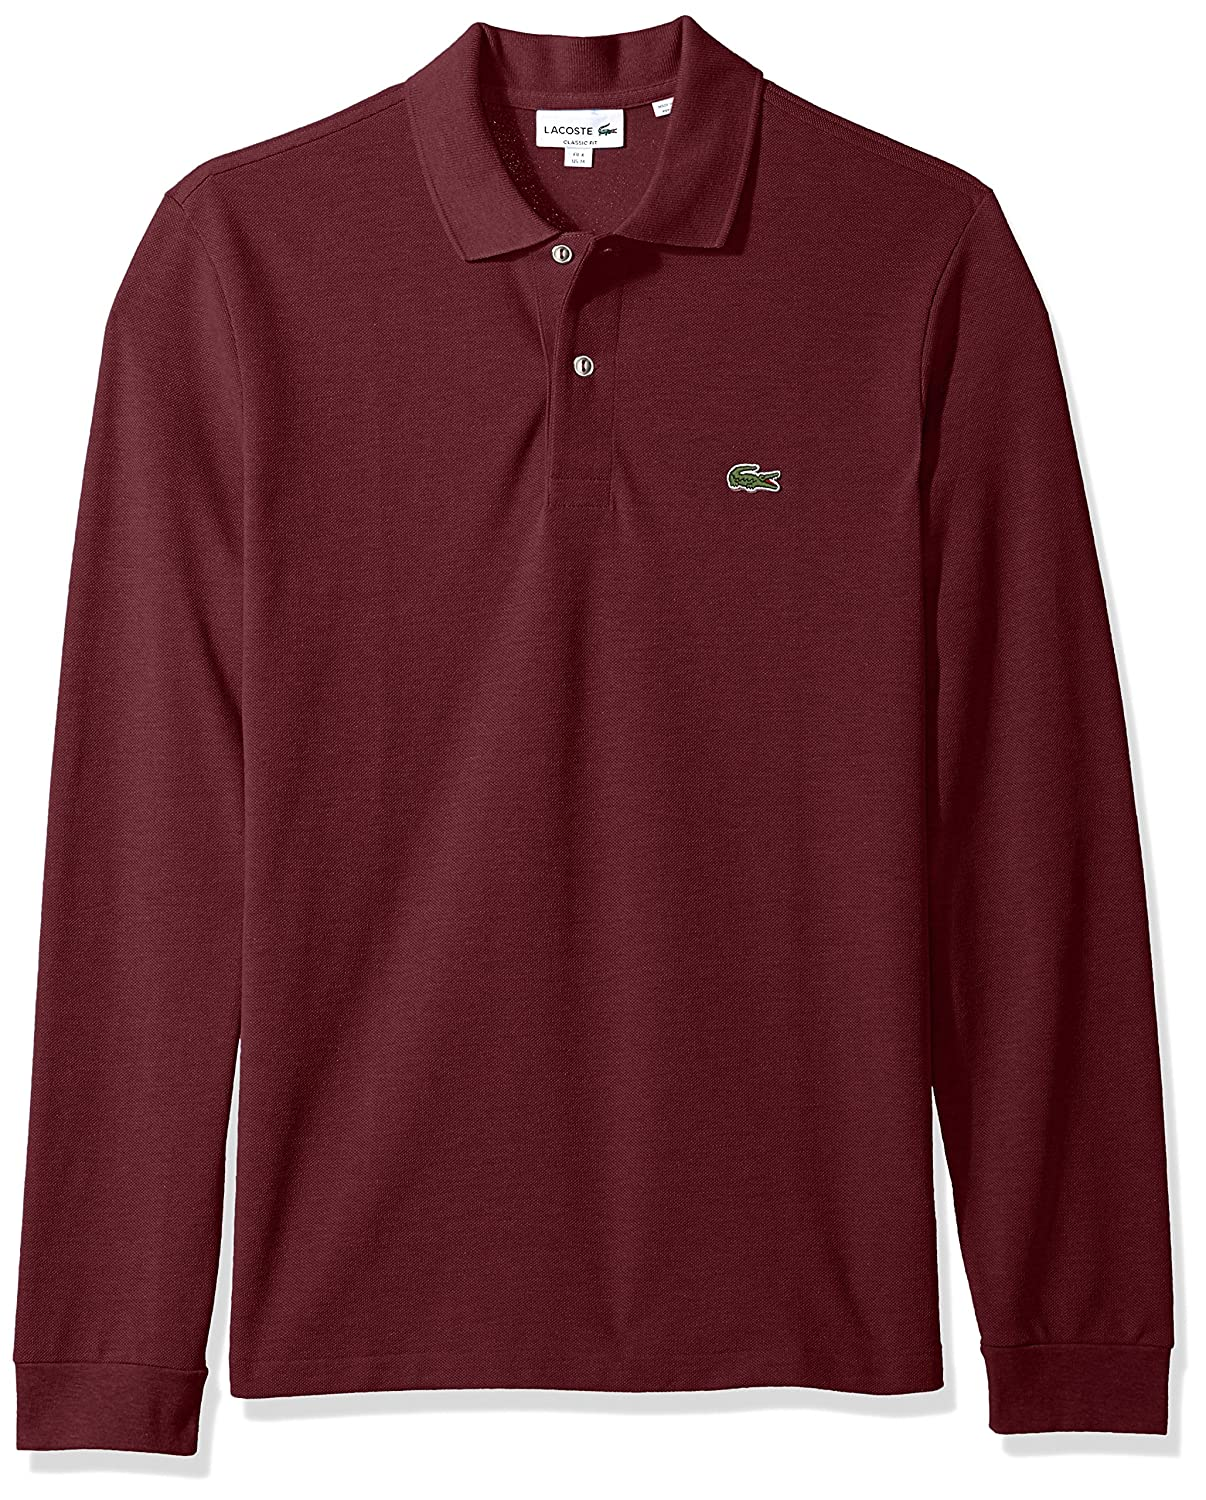 Lacoste Mens Short Sleeve Pique Classic Fit Chine Polo Shirt L1313